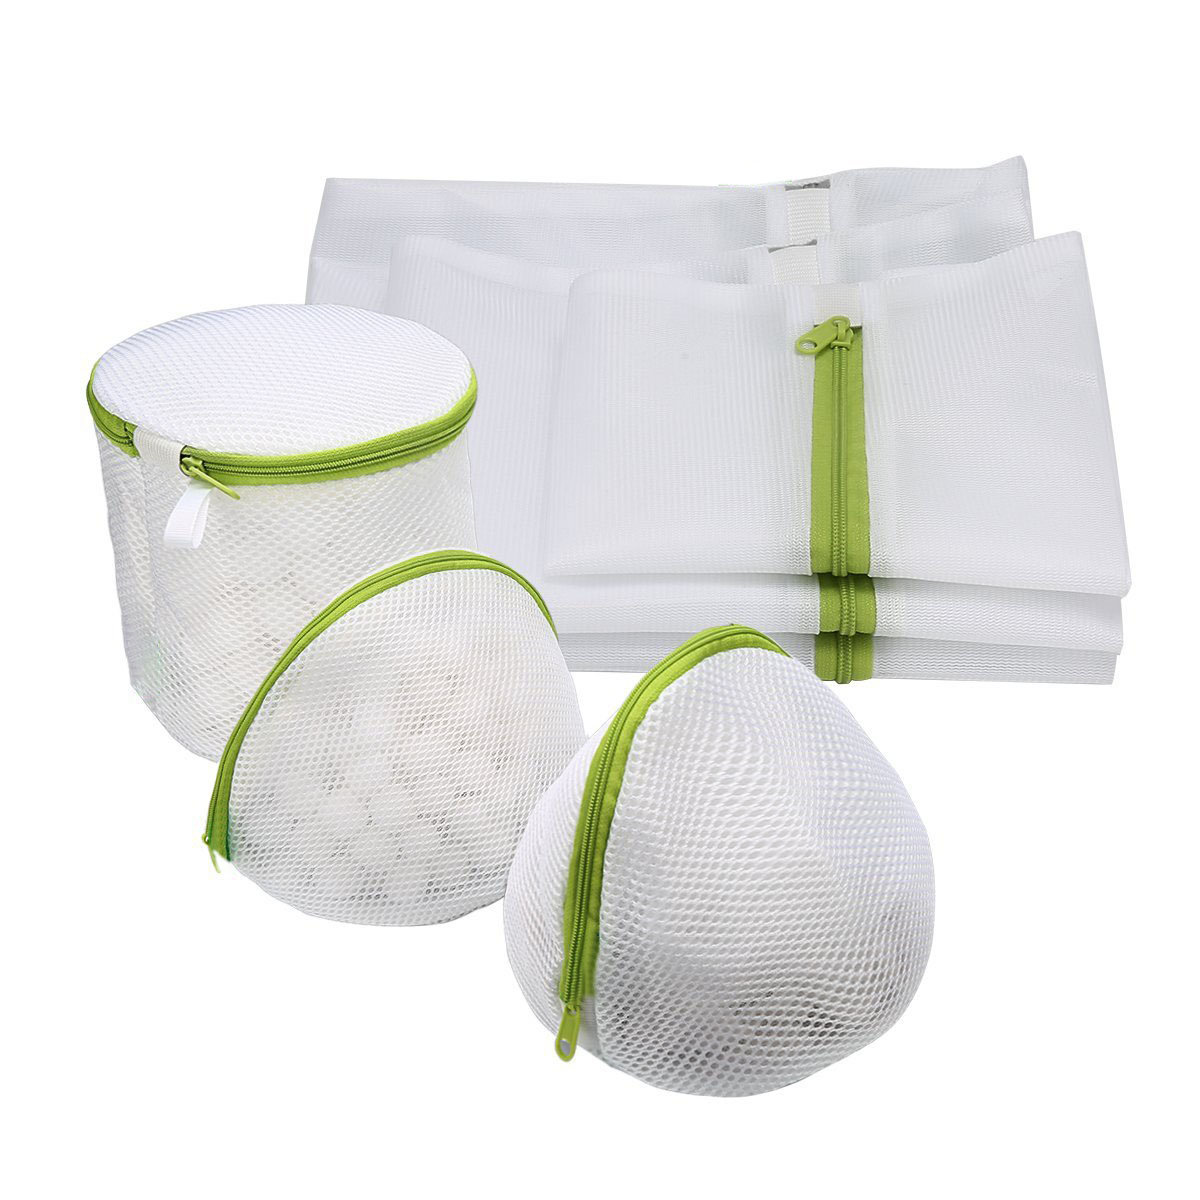 6Pcs Mesh Laundry Bags Set Washing Clothes Zipper Solid Net for Blouse Hosiery Stocking Underwear Bra and Lingerie Travel Laundry Bag